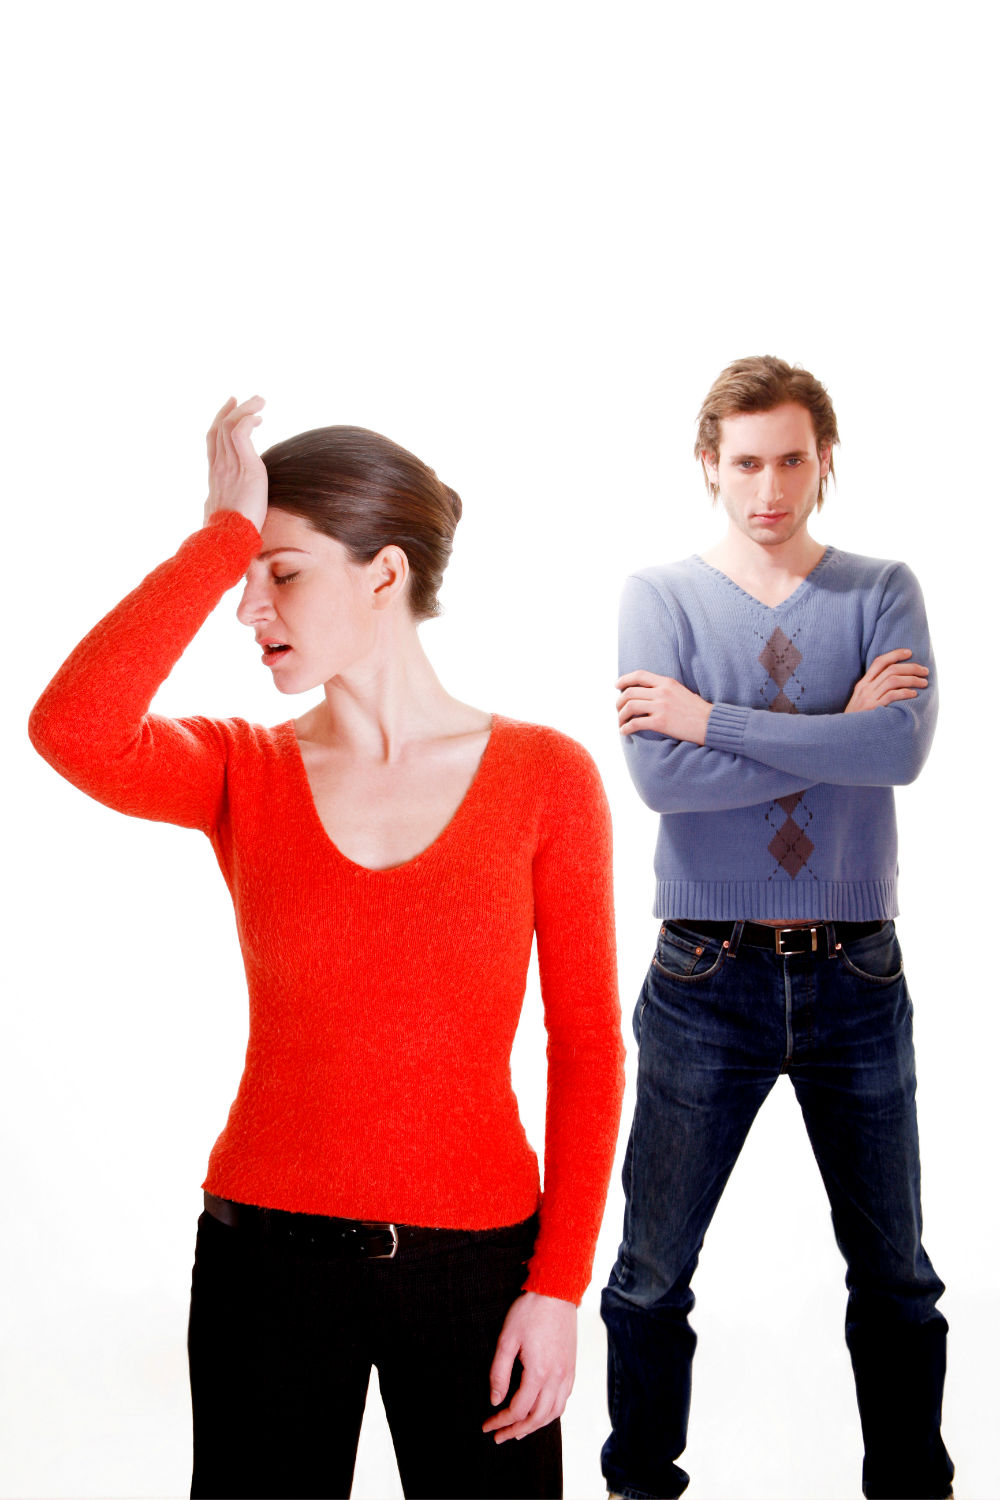 15 Unrealistic Expectations That Can Ruin Your Marriage